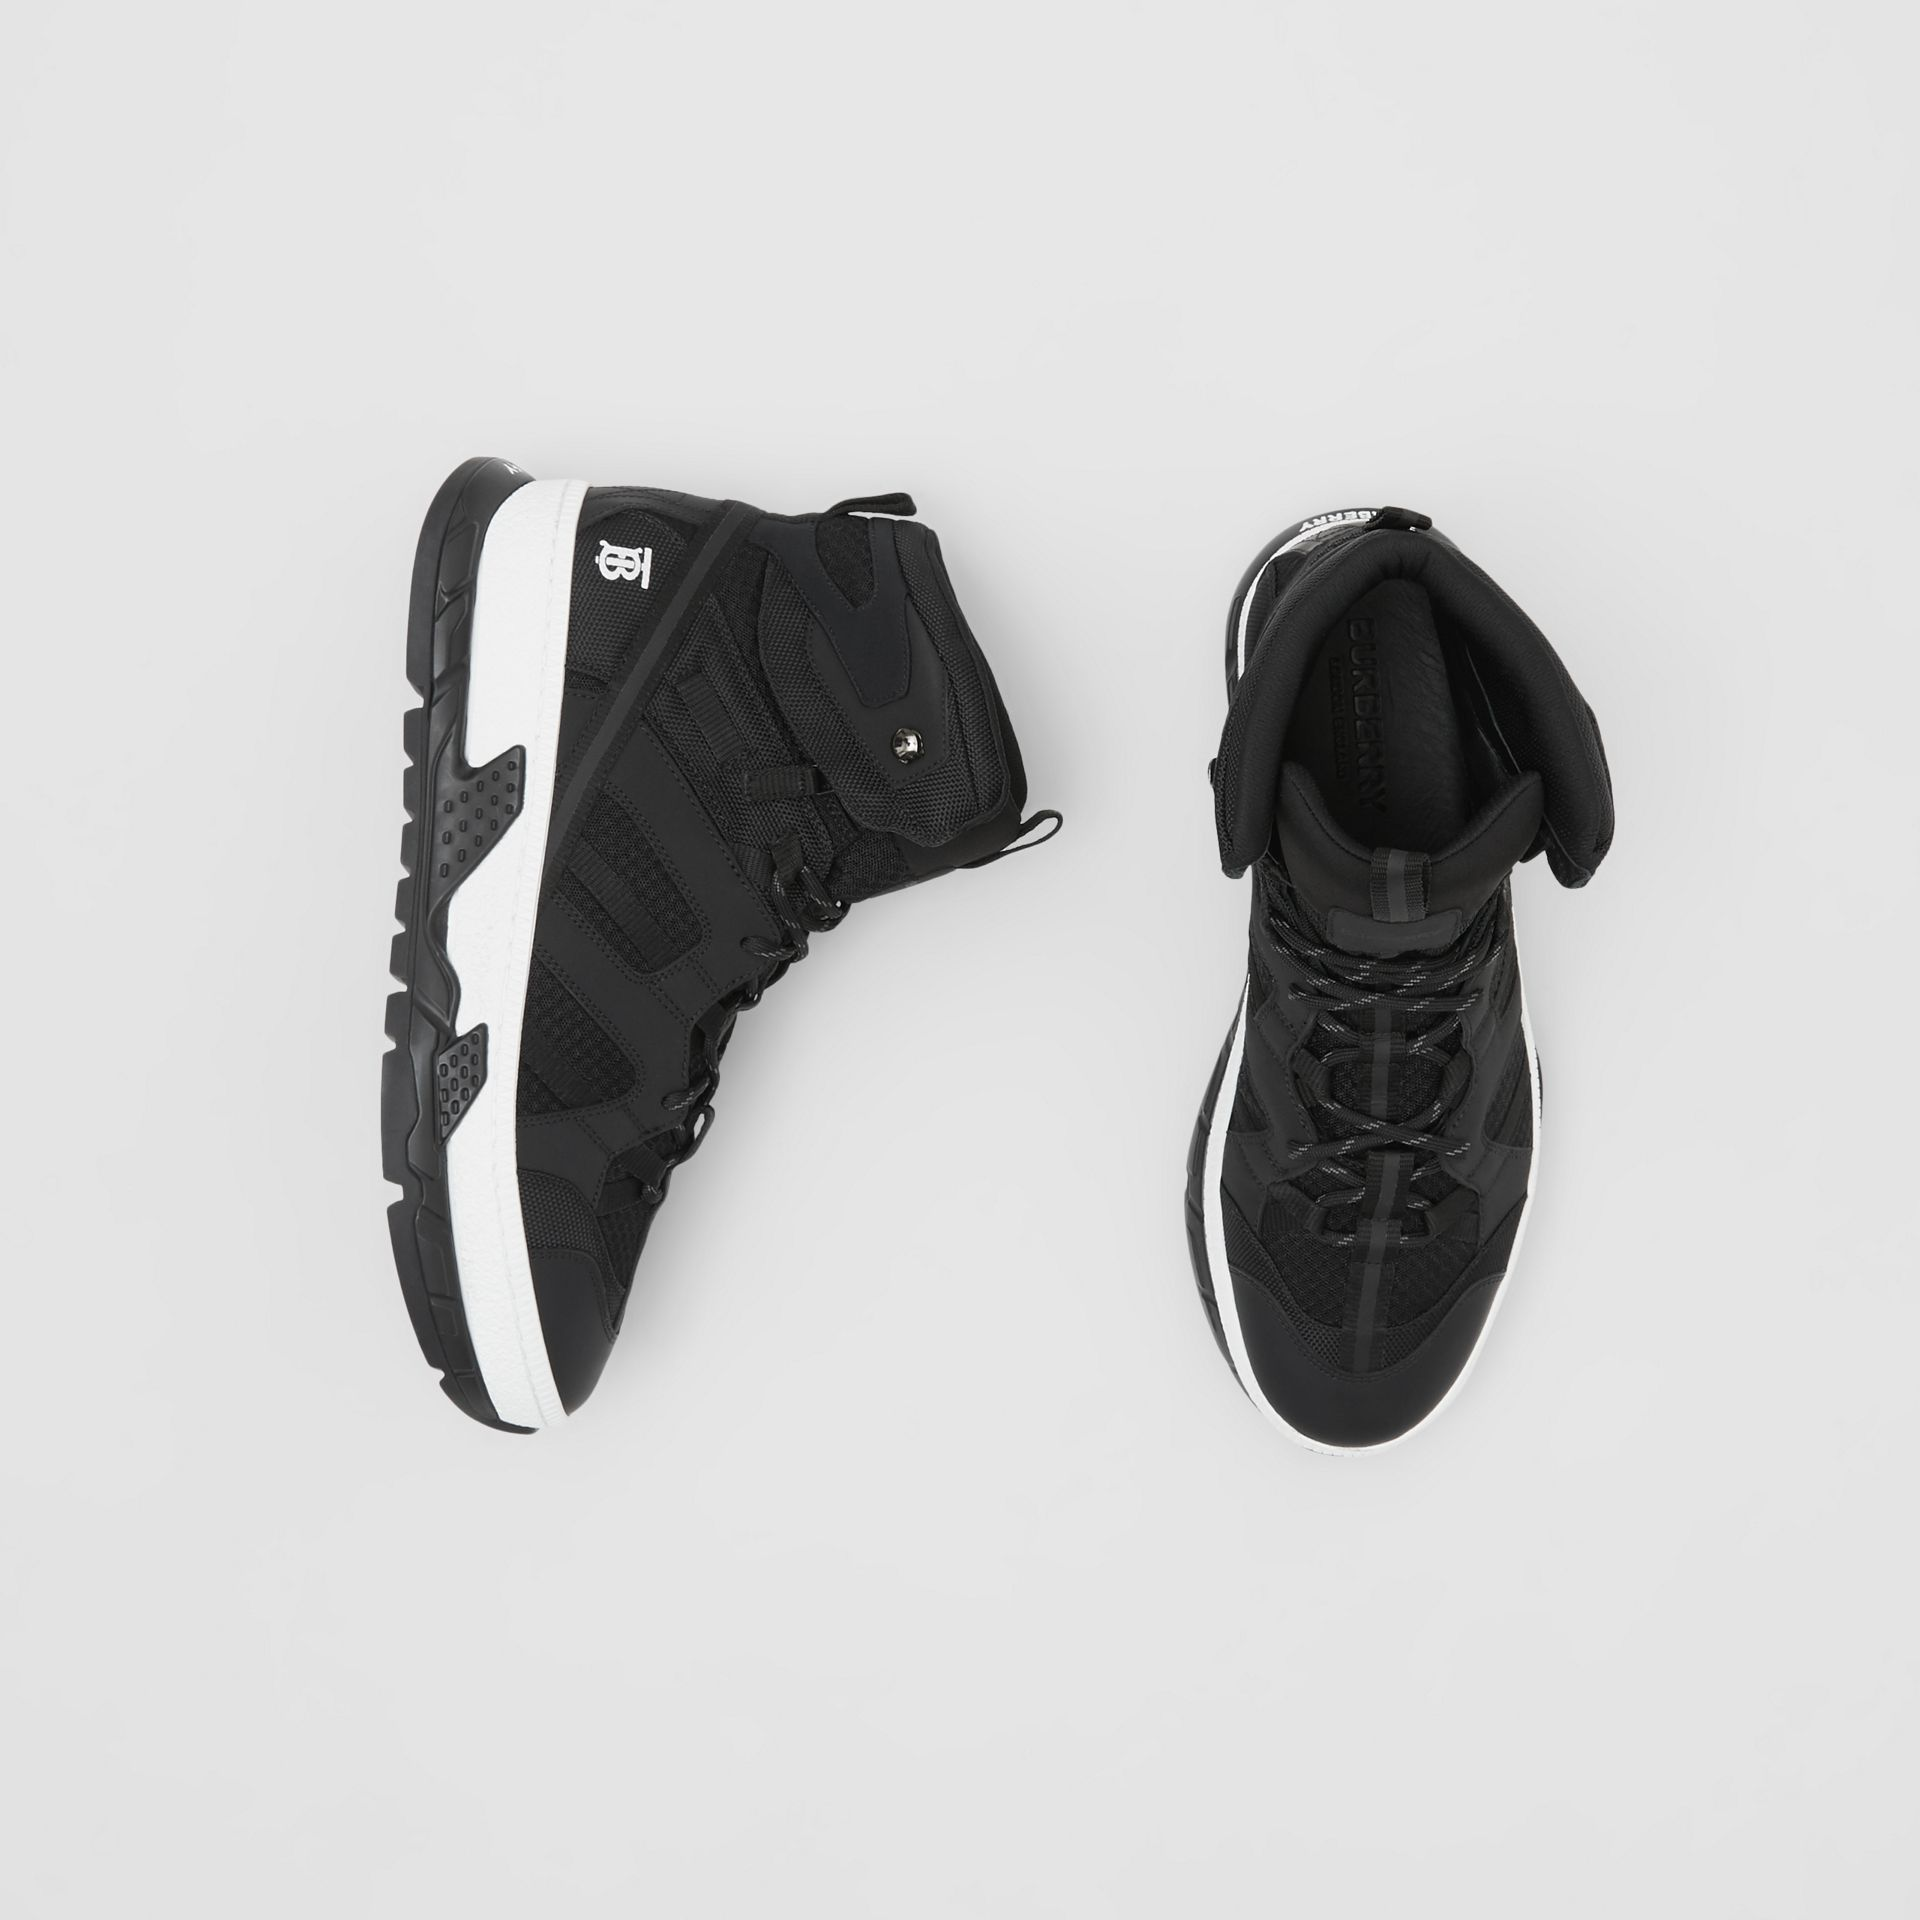 Sneakers montantes Union en filet et nubuck (Noir) - Homme | Burberry - photo de la galerie 0